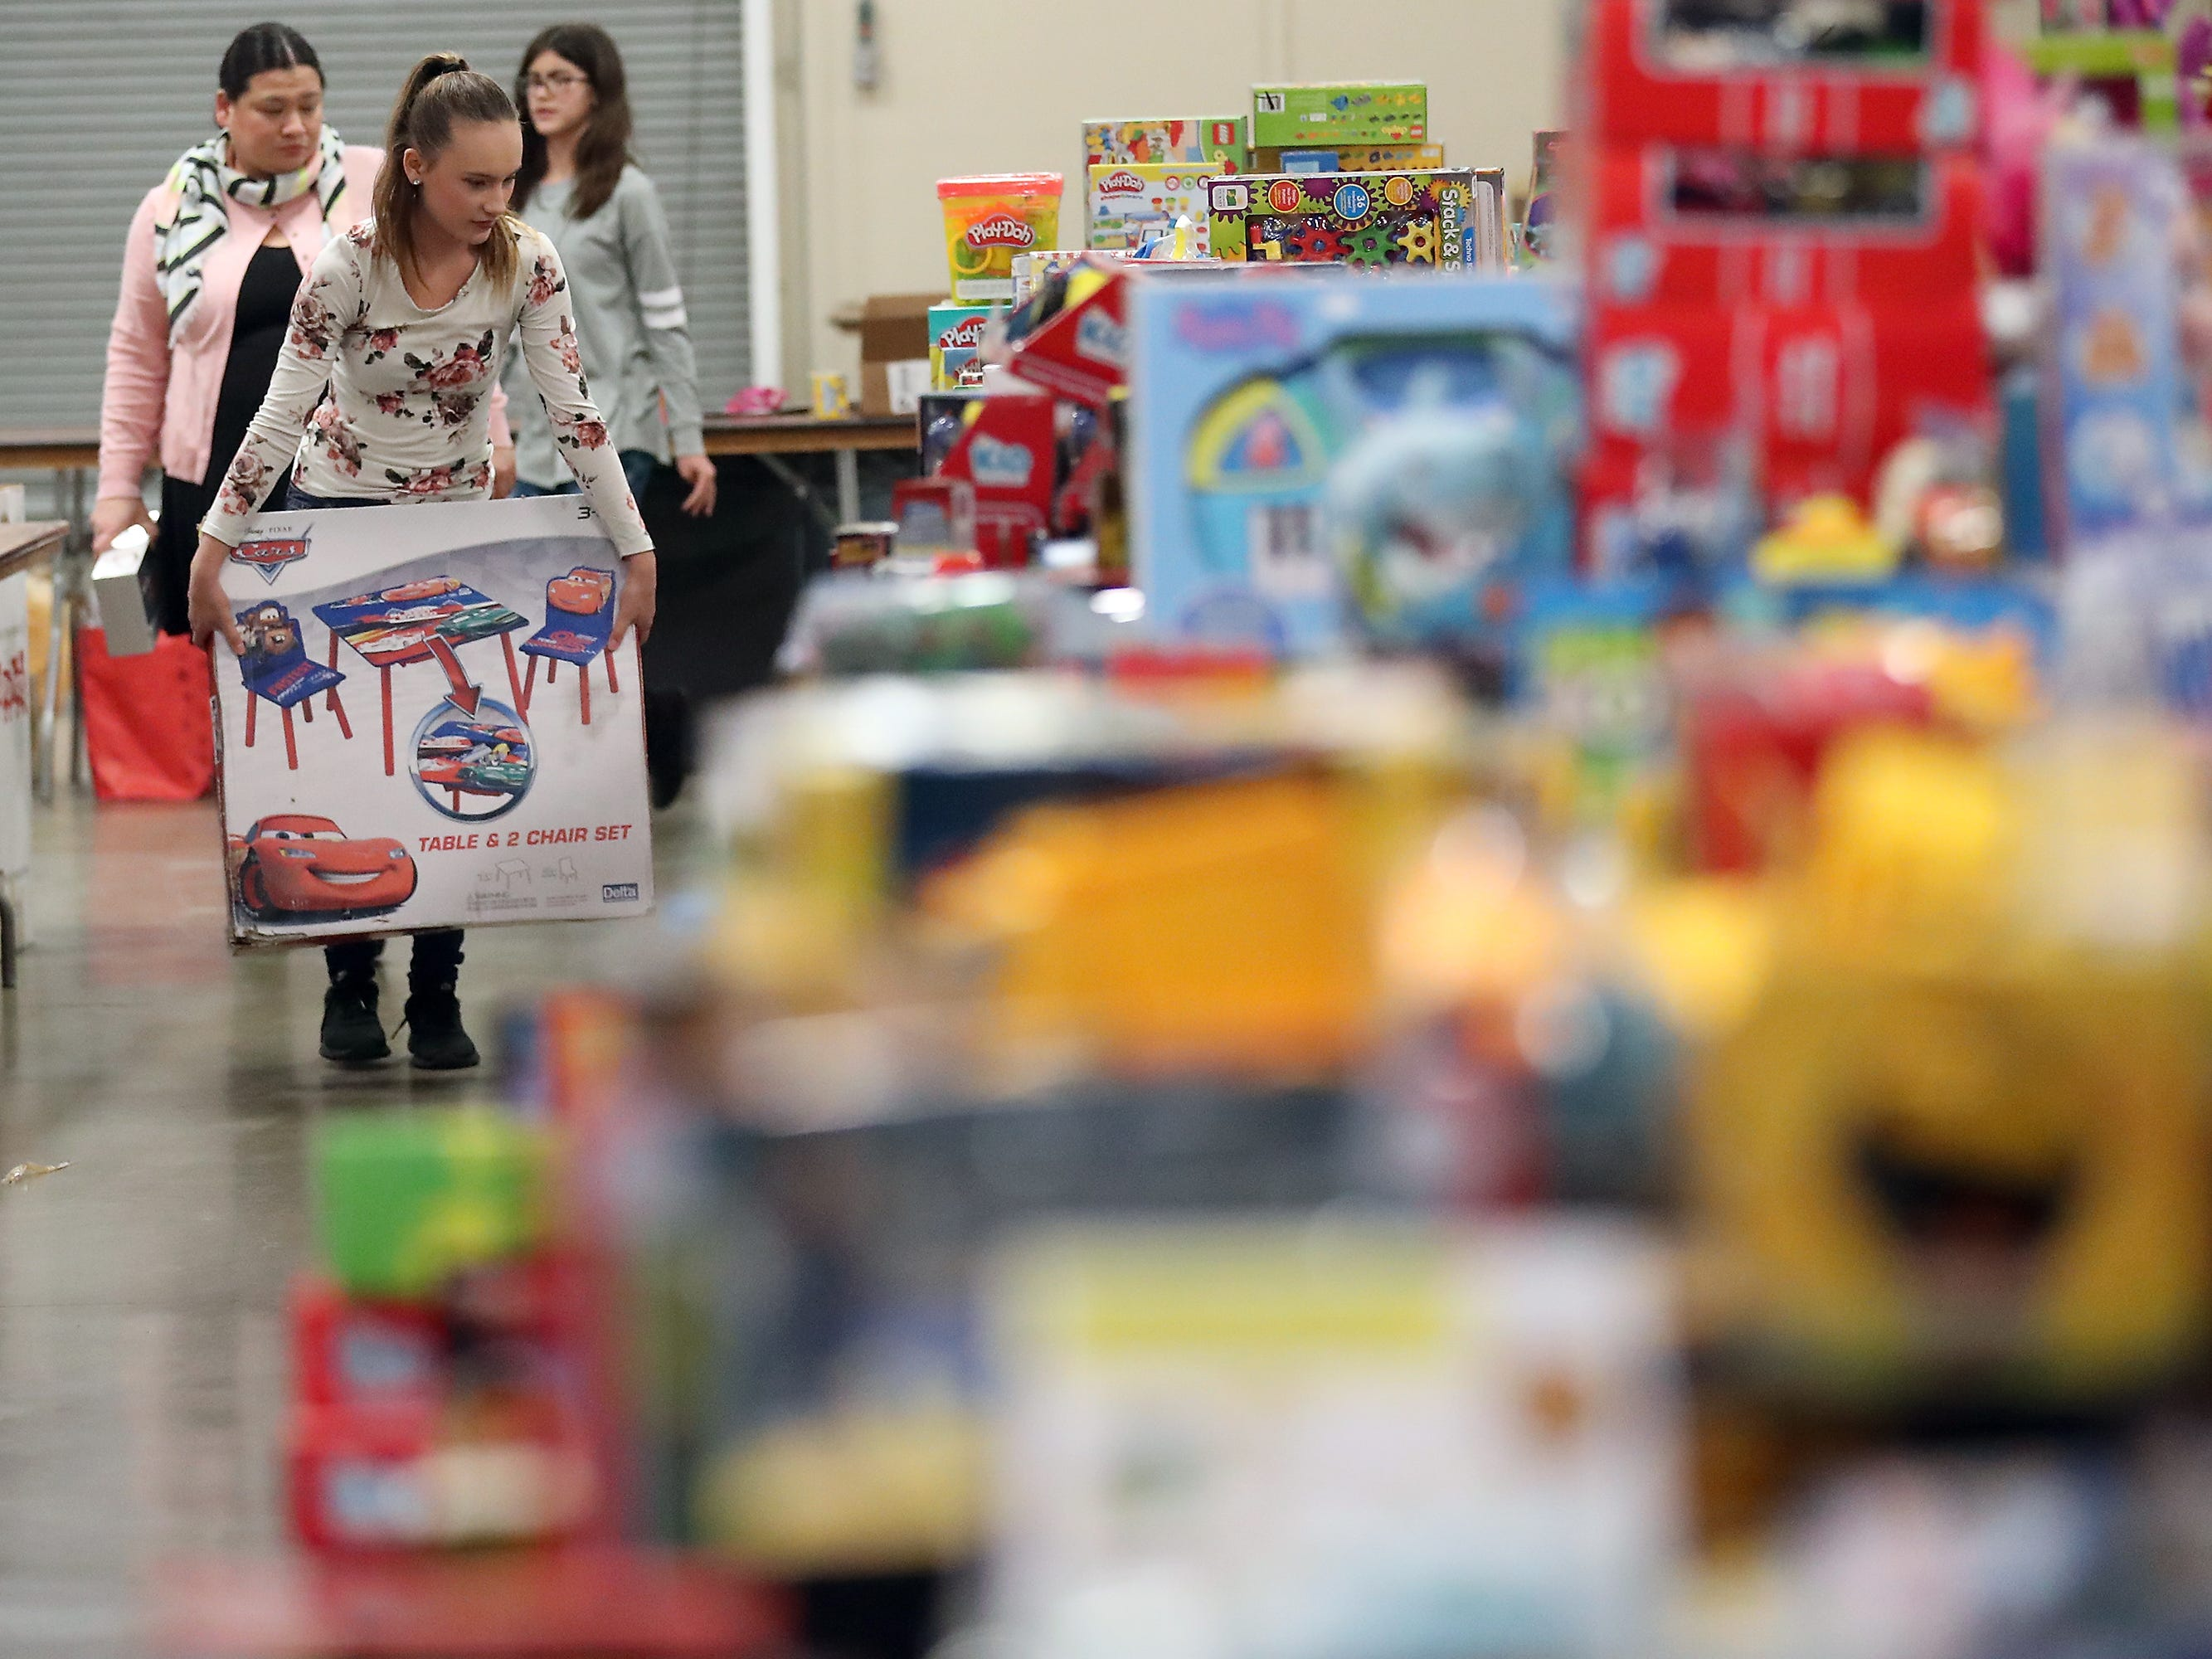 Volunteer Mikayla Hawk, 14, makes her way along the tables of toys as she tries to find a spot for a large item for the upcoming Toys For Tots event in President's Hall at the Kitsap County Fairgrounds on Wednesday, December 12, 2018. This is the second year that Mikayla has been volunteering at the event.